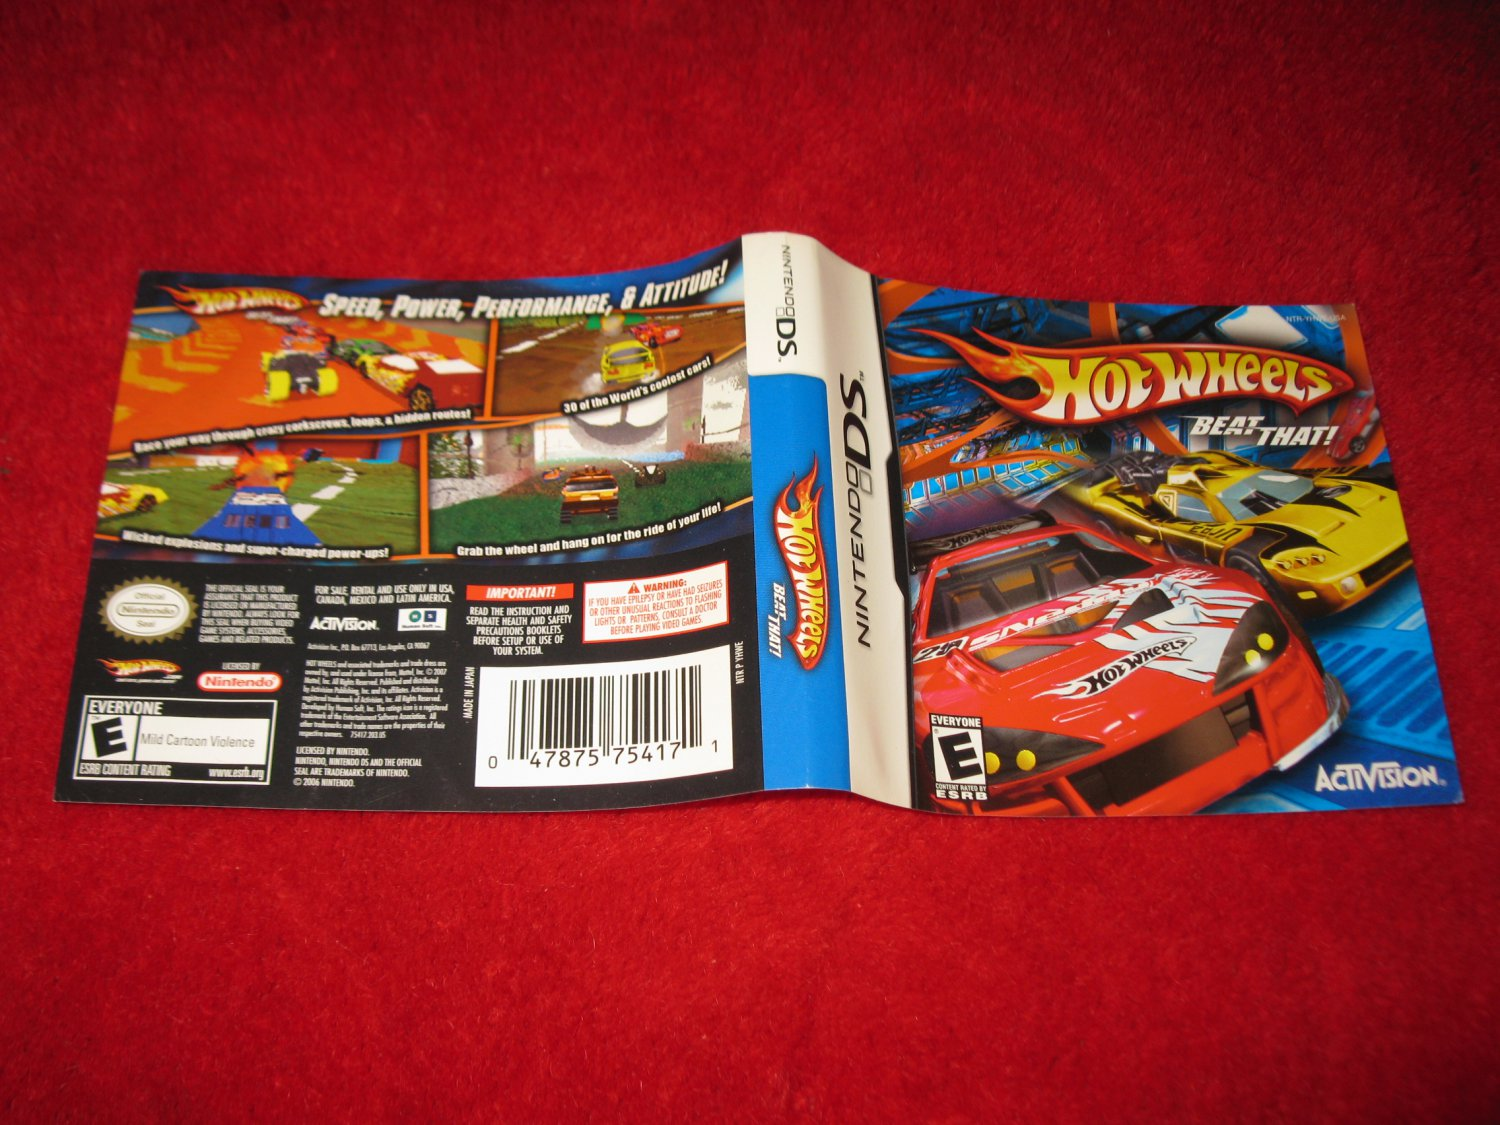 Hot Wheels Beat That : Nintendo DS Video Game Case Cover Art insert